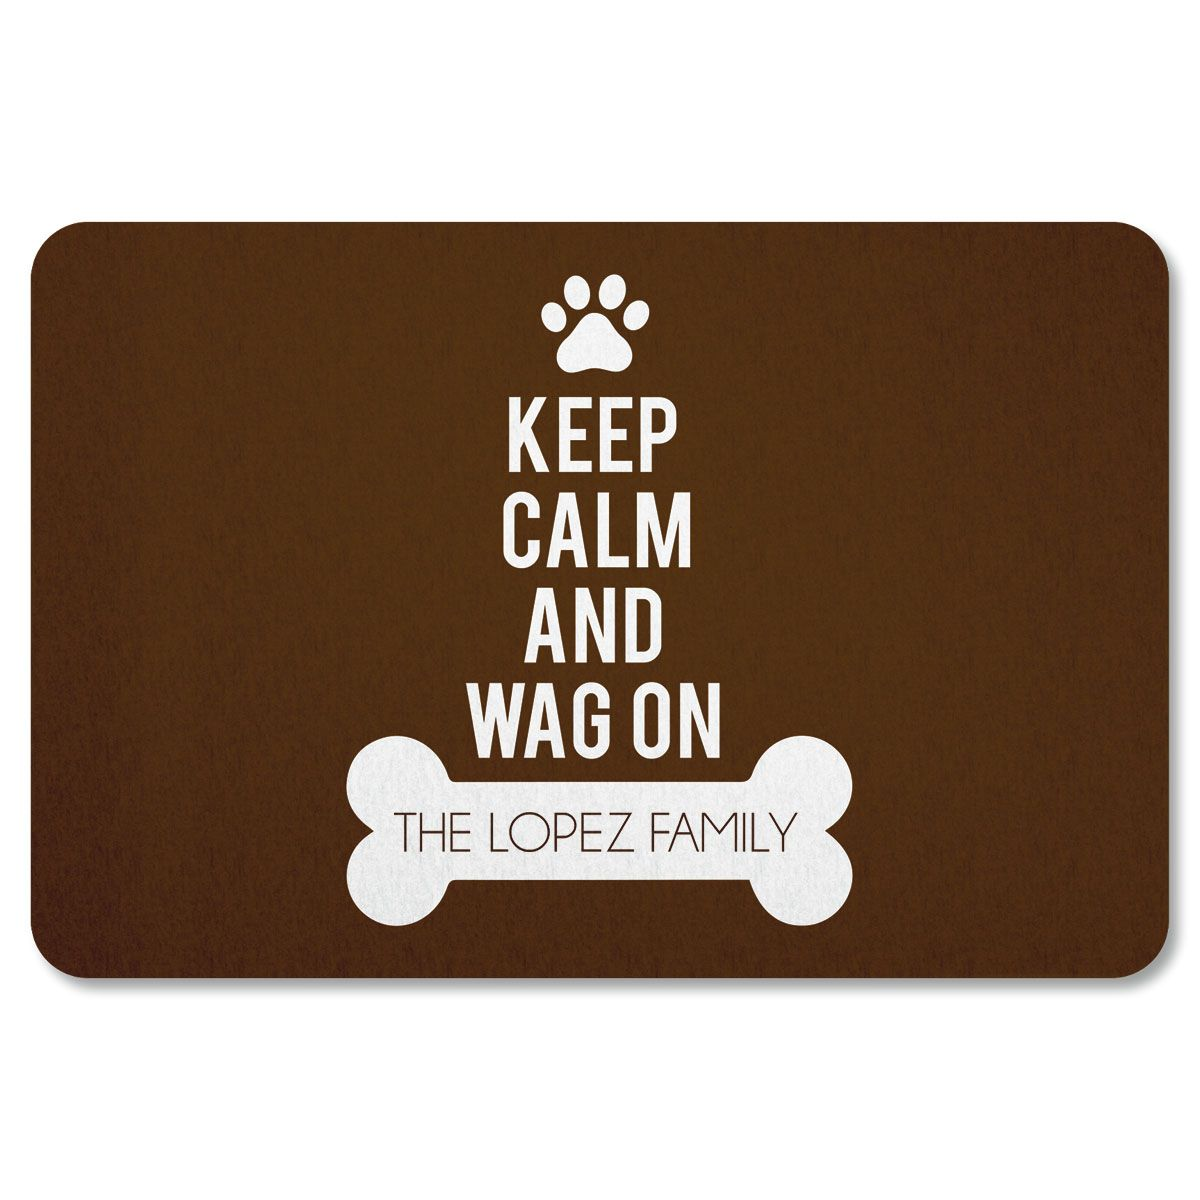 Wag On Personalized Doormat